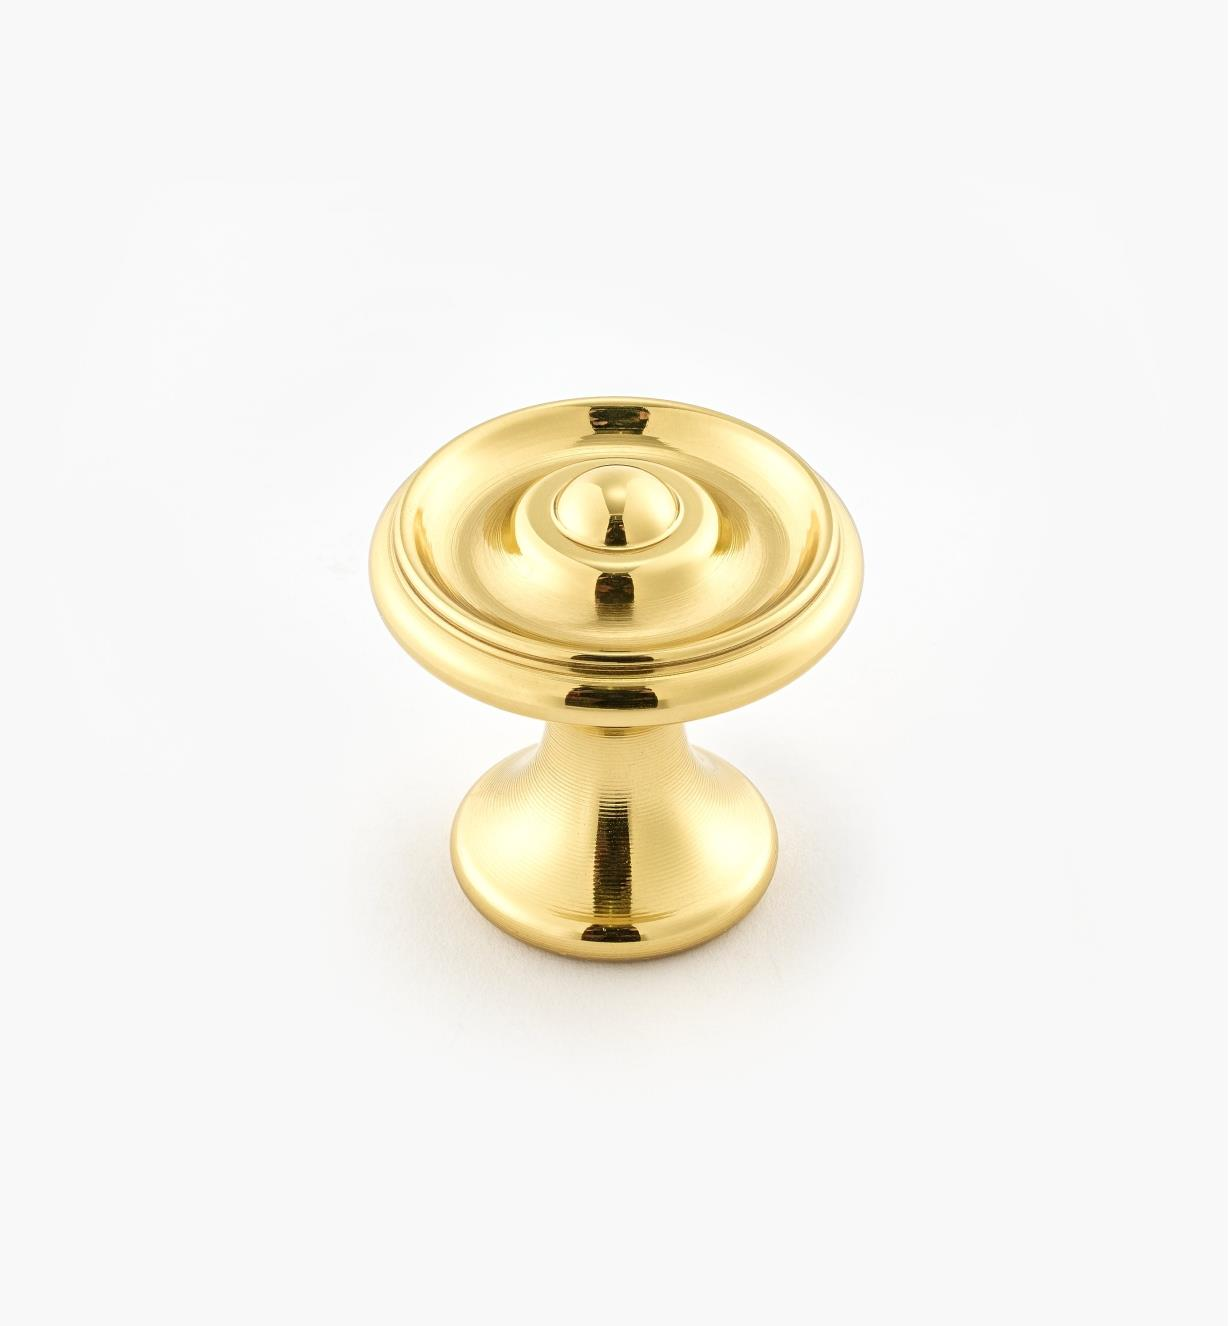 "02W3201 - Polished Brass Suite - 1 1/8"" x 1 1/8"" Turned Brass Raised Knob"